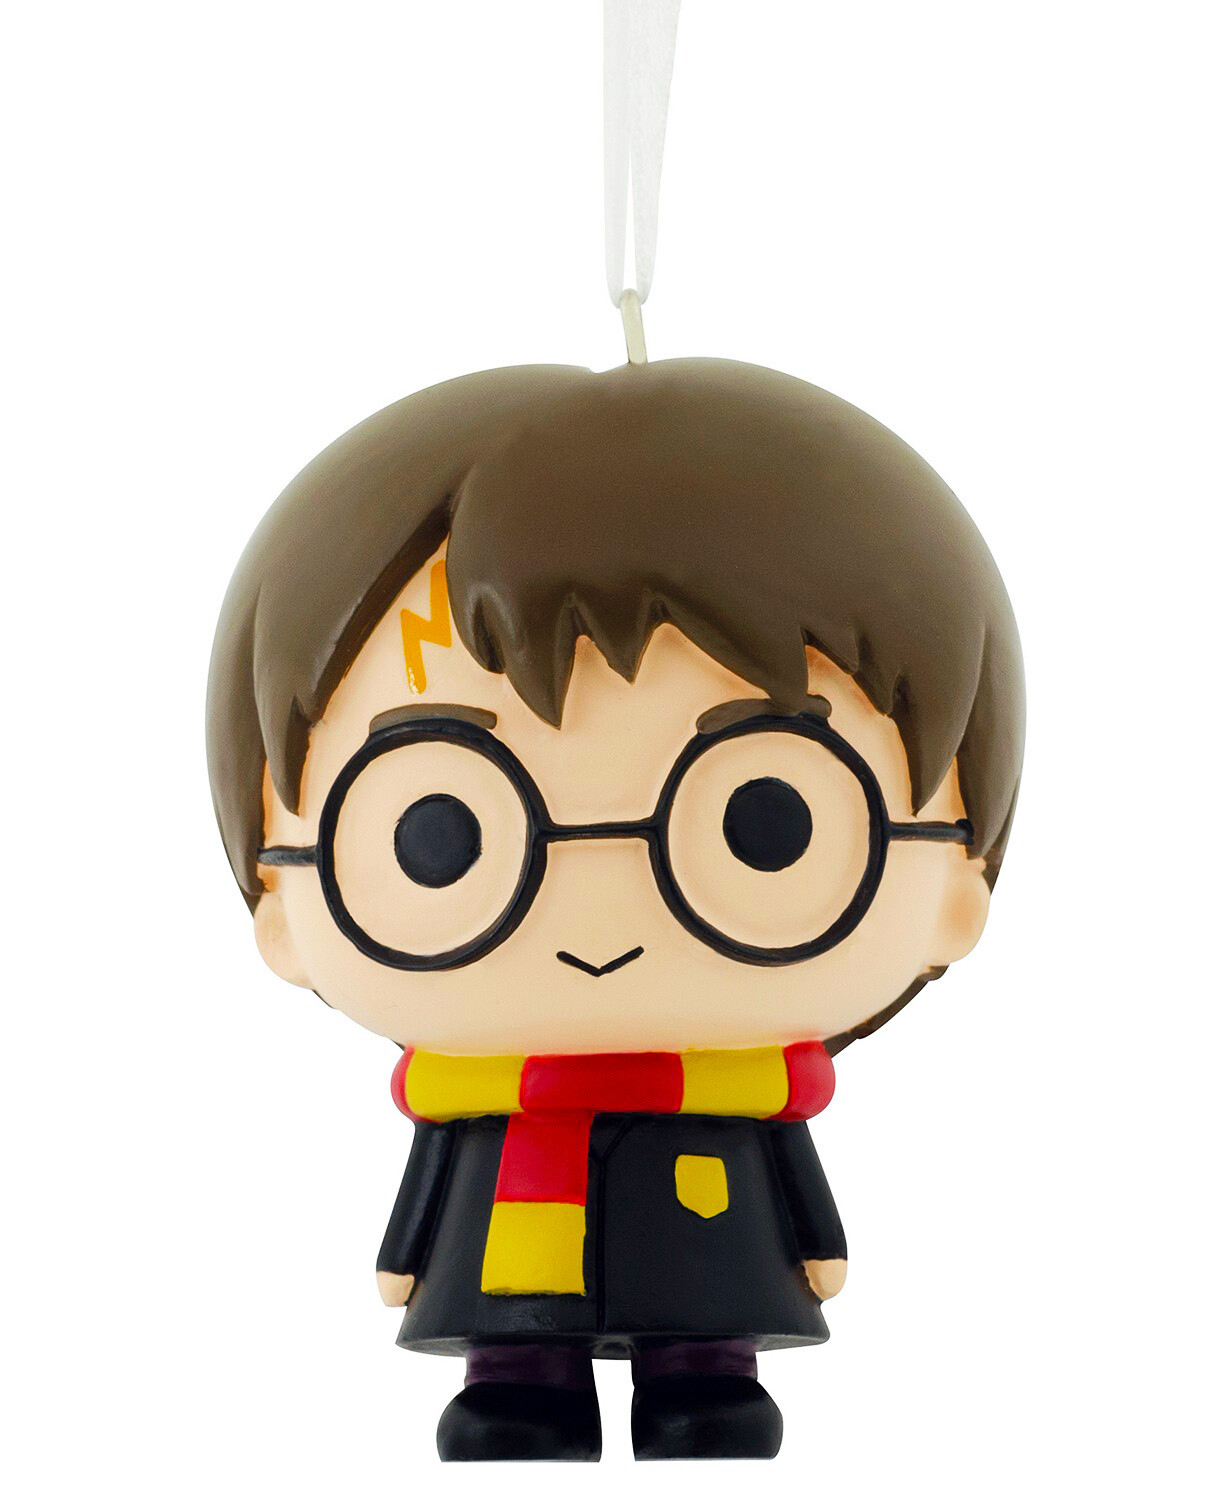 Harry Potter Hallmark Christmas Tree Holiday Ornament